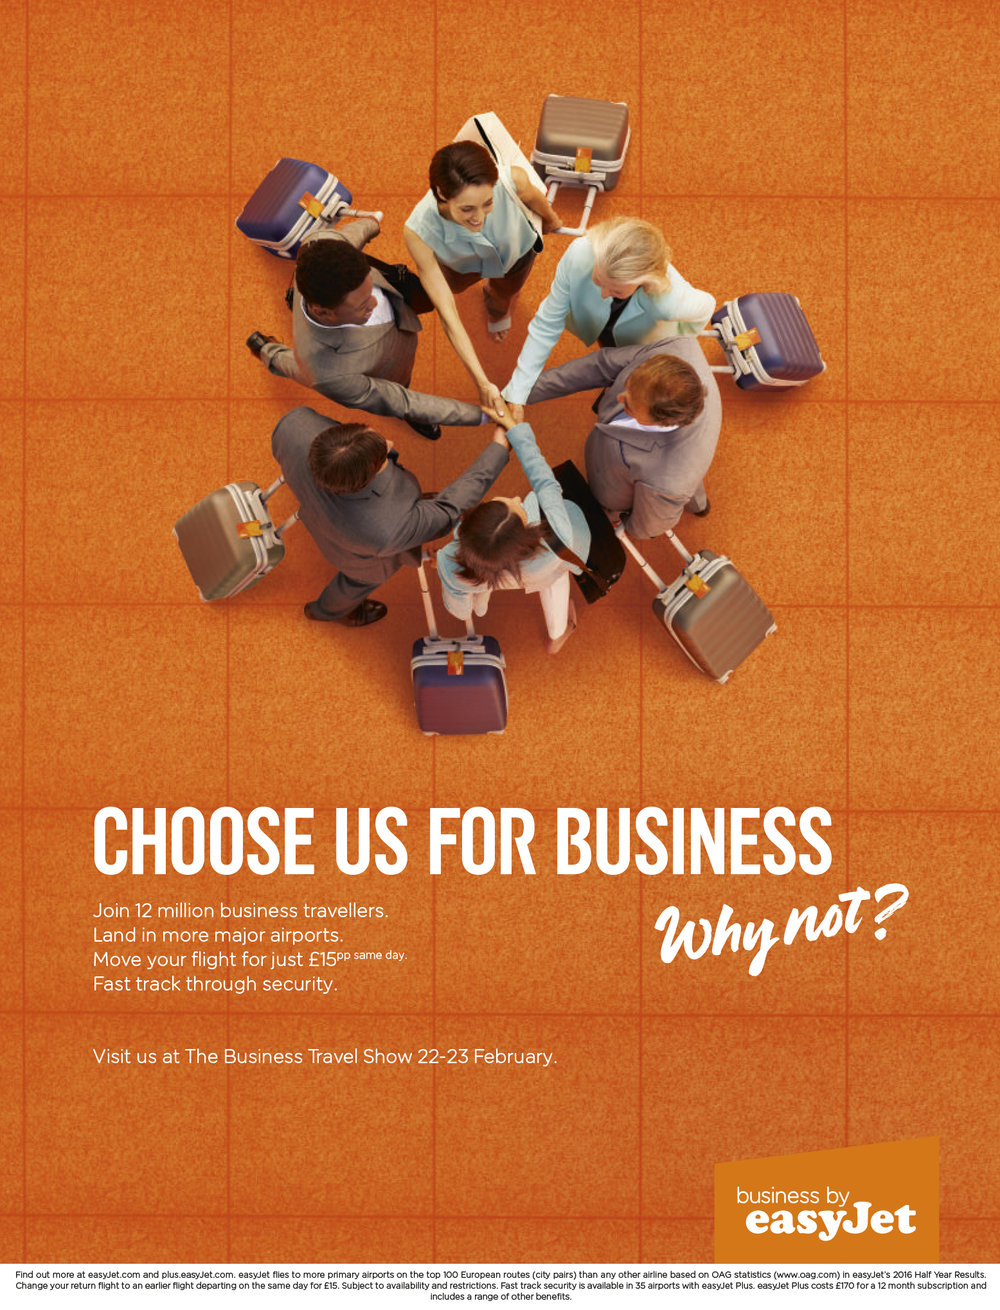 The 'Why not?' campaign was created in 2016.